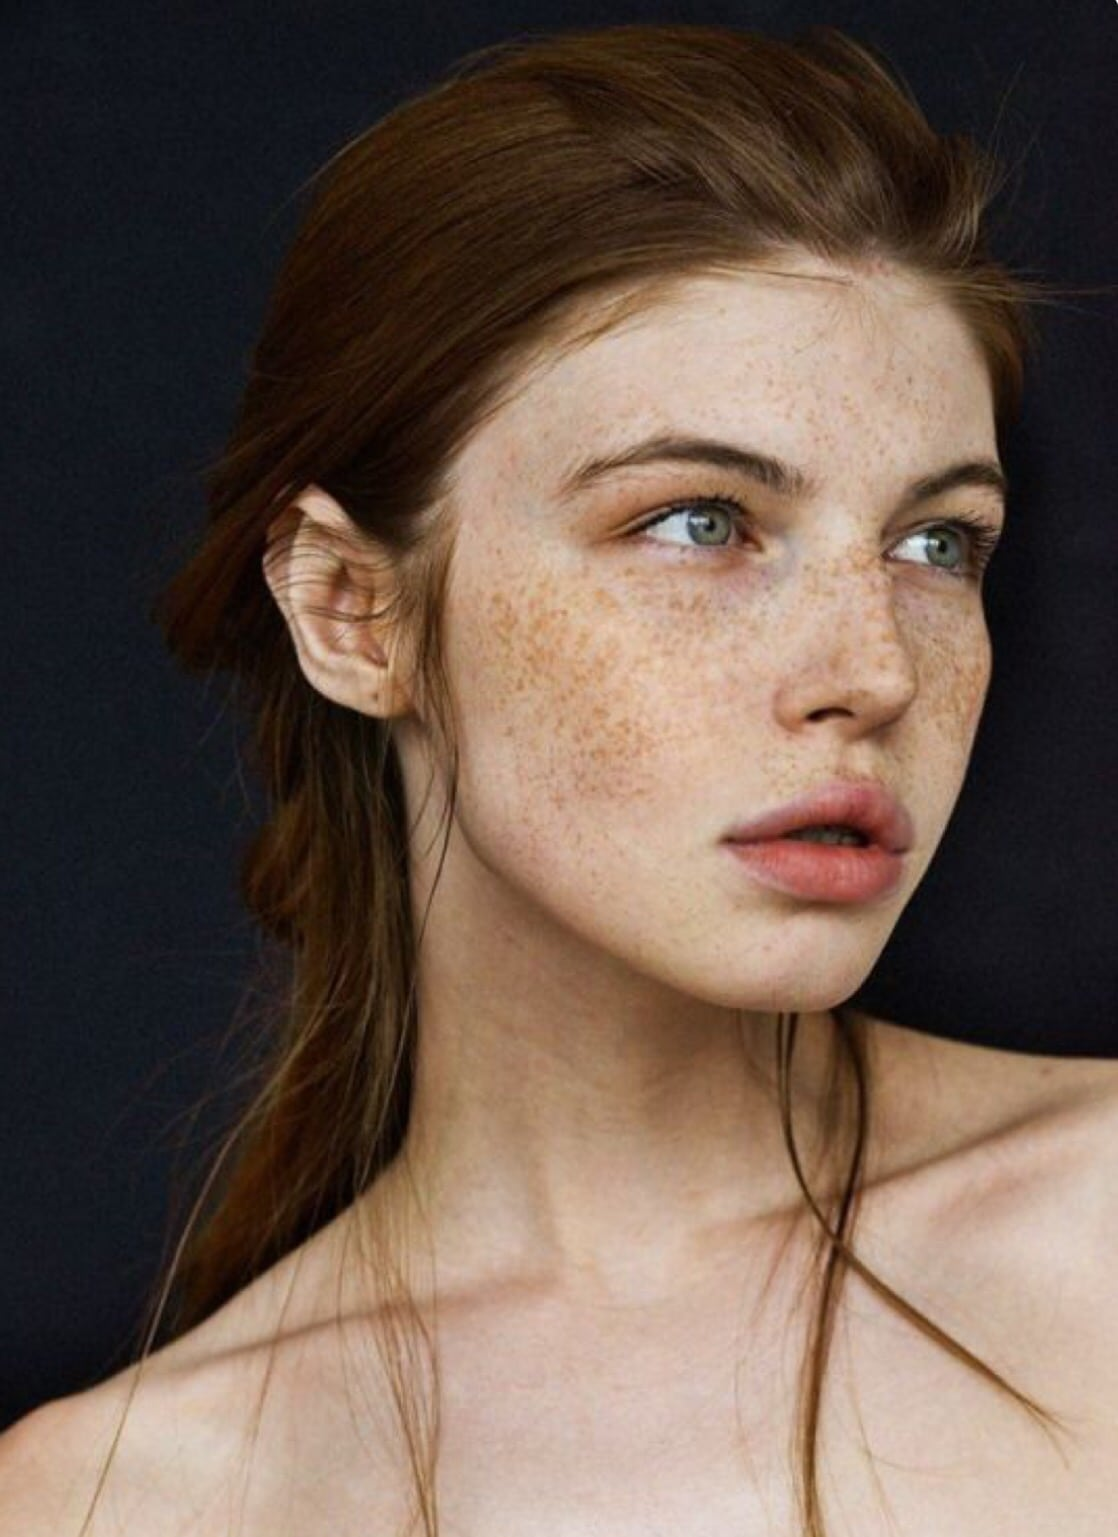 Look of Innocence | Photos That Prove Women With Freckles Are Beautiful